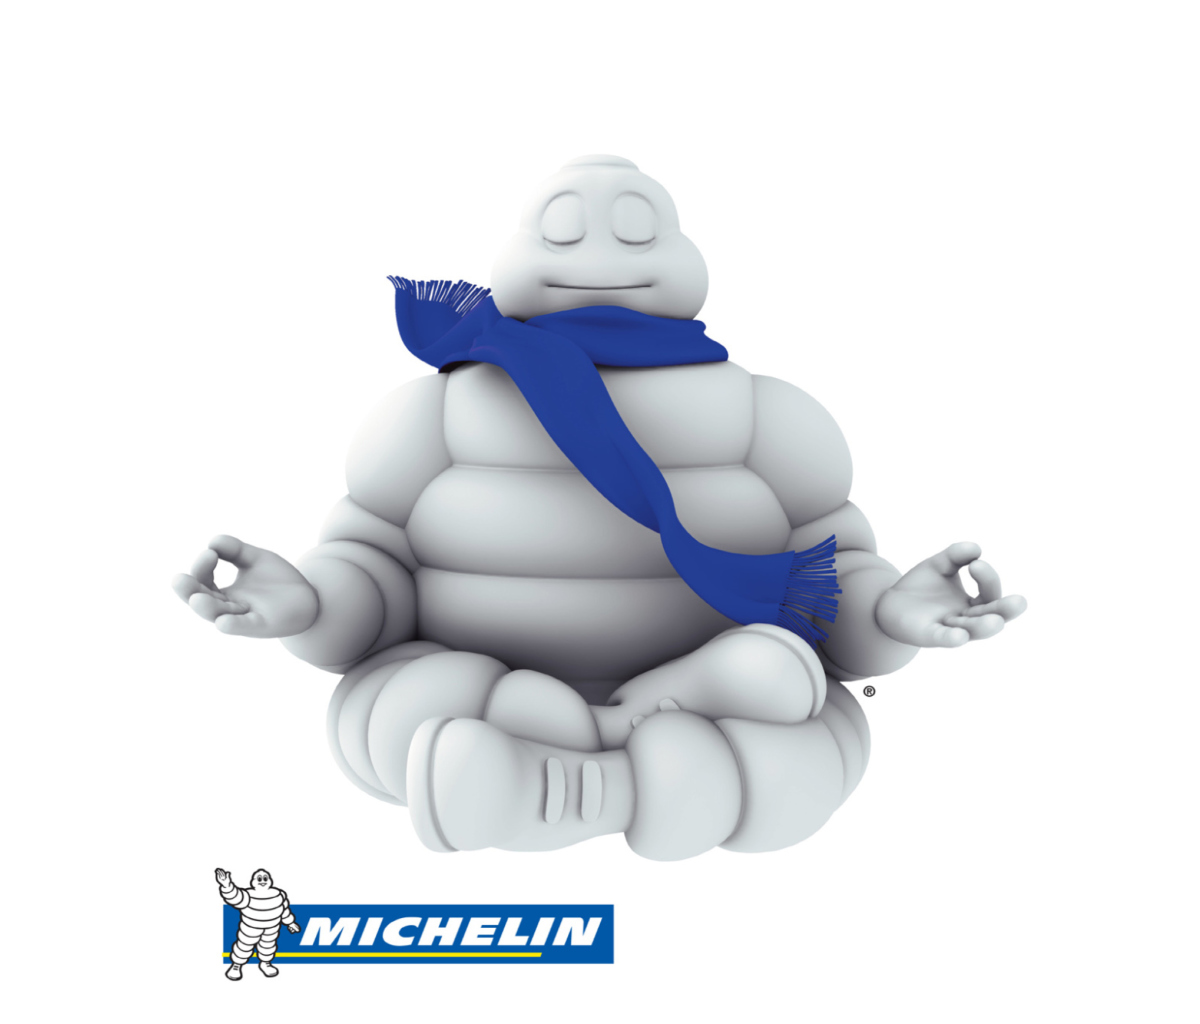 Michelin wallpaper 1200x1024